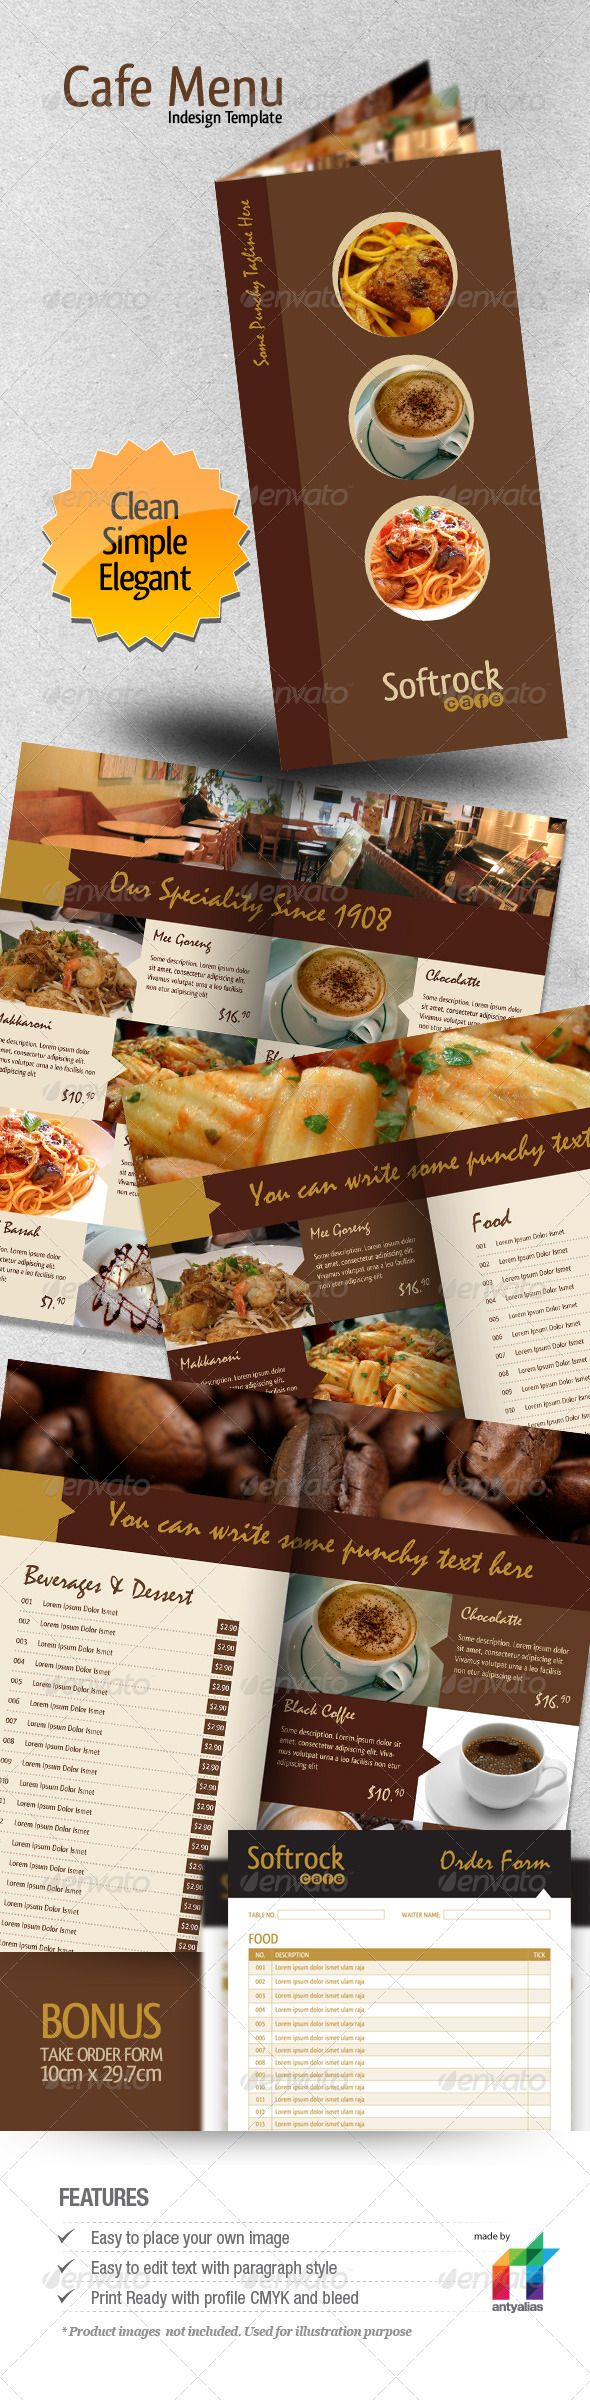 Cafe Menu Indesign Template lunch cafe menu yellow 14x29 – Lunch Menu Template